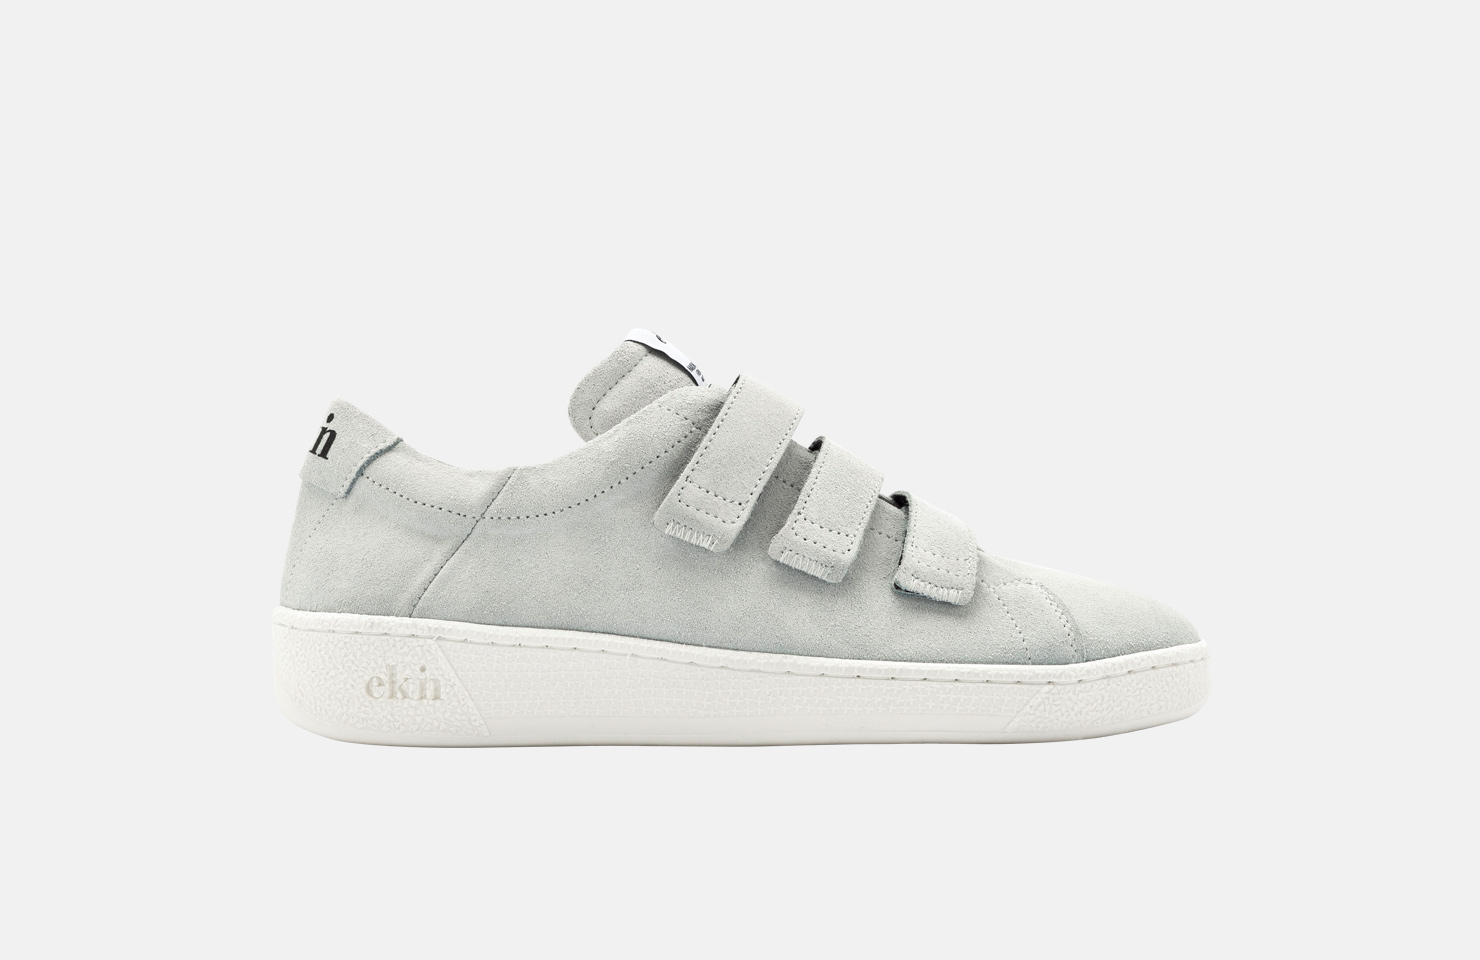 Stickseed / Offwhite